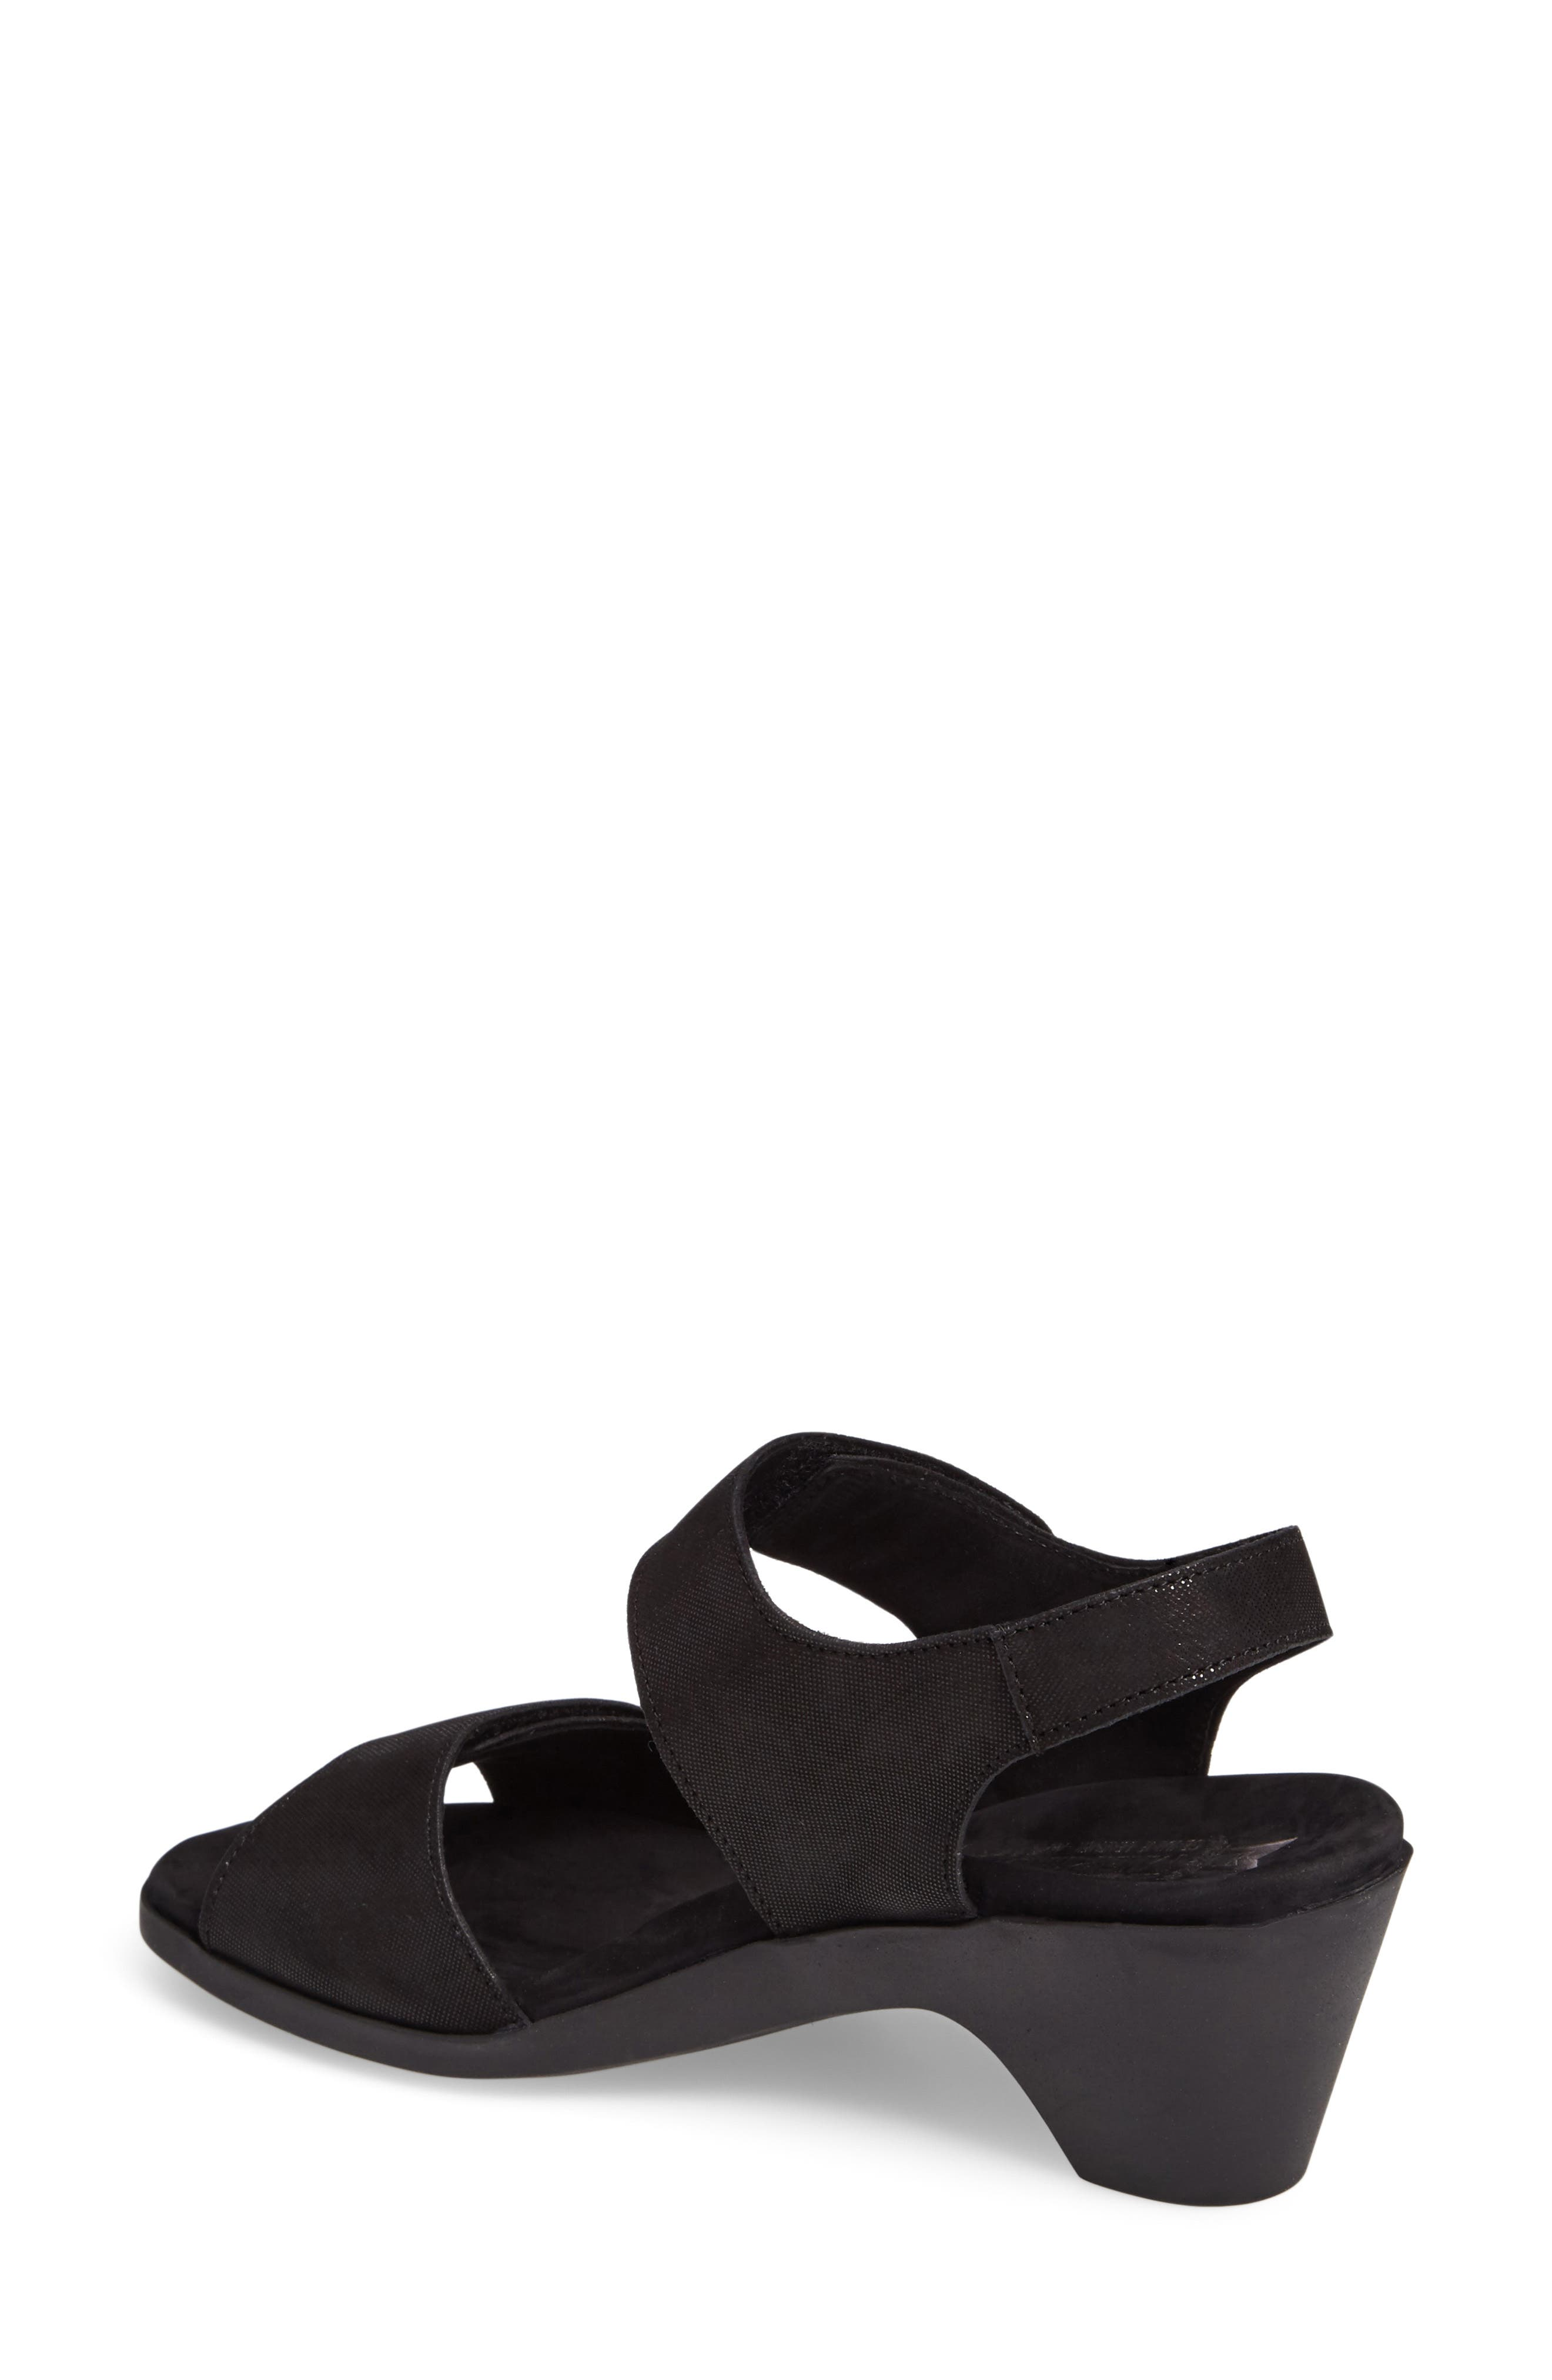 Cecila Sandal,                             Alternate thumbnail 3, color,